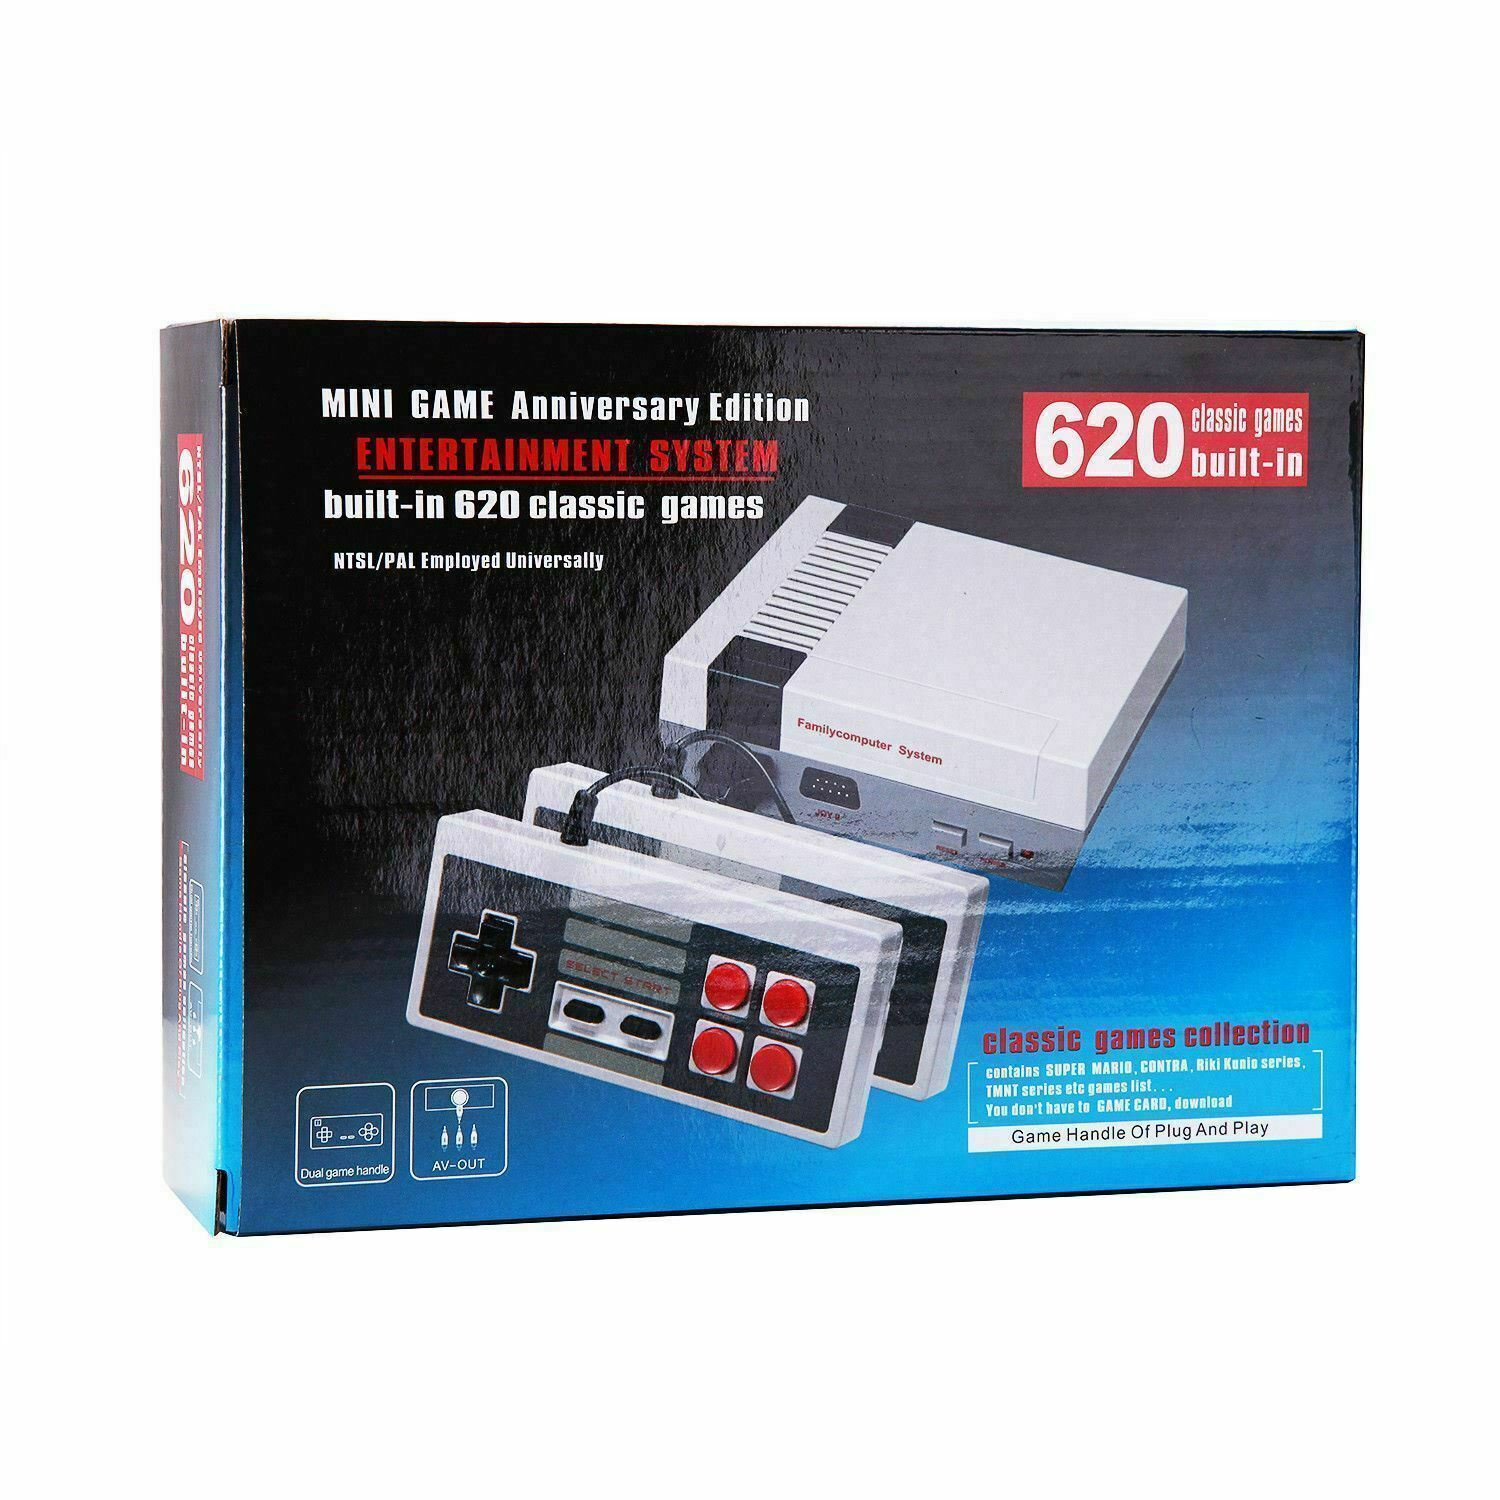 Classic Video Game System with Over 620 Built-In Games Mini